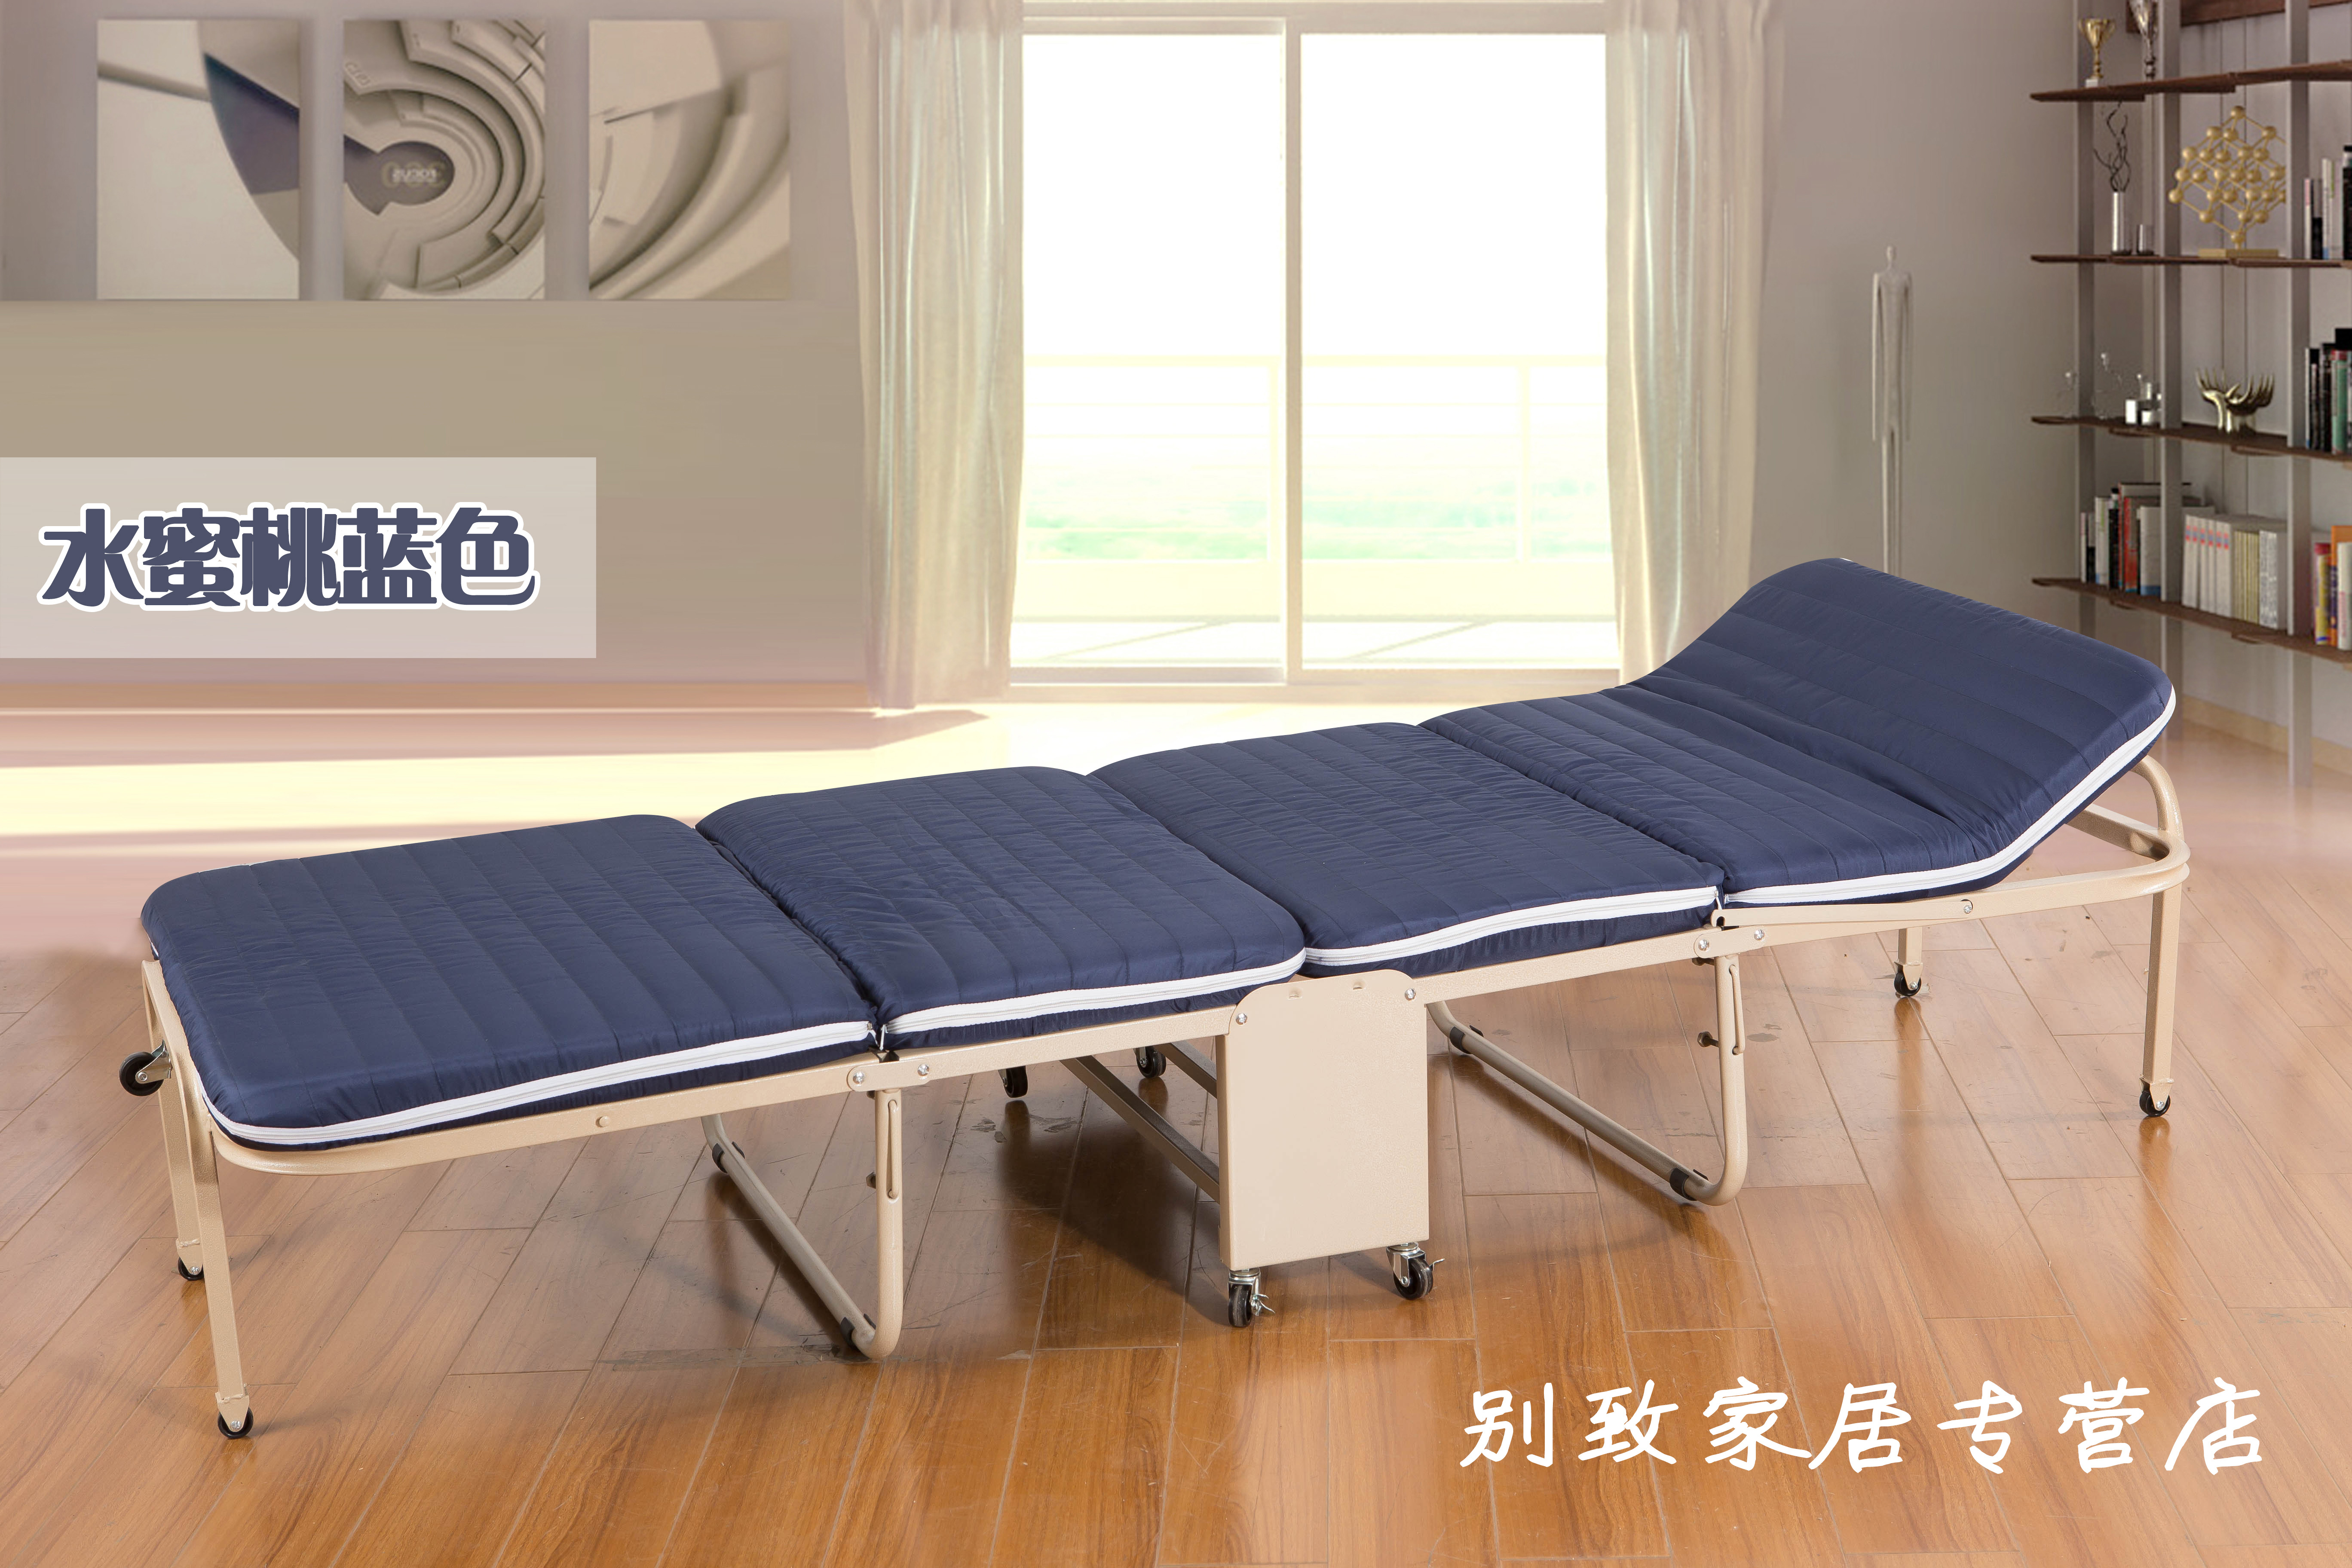 Widening thick sponge folding bed, lunch bed, wooden bed, single bed, double bed, children's bed bed, ten provinces mail